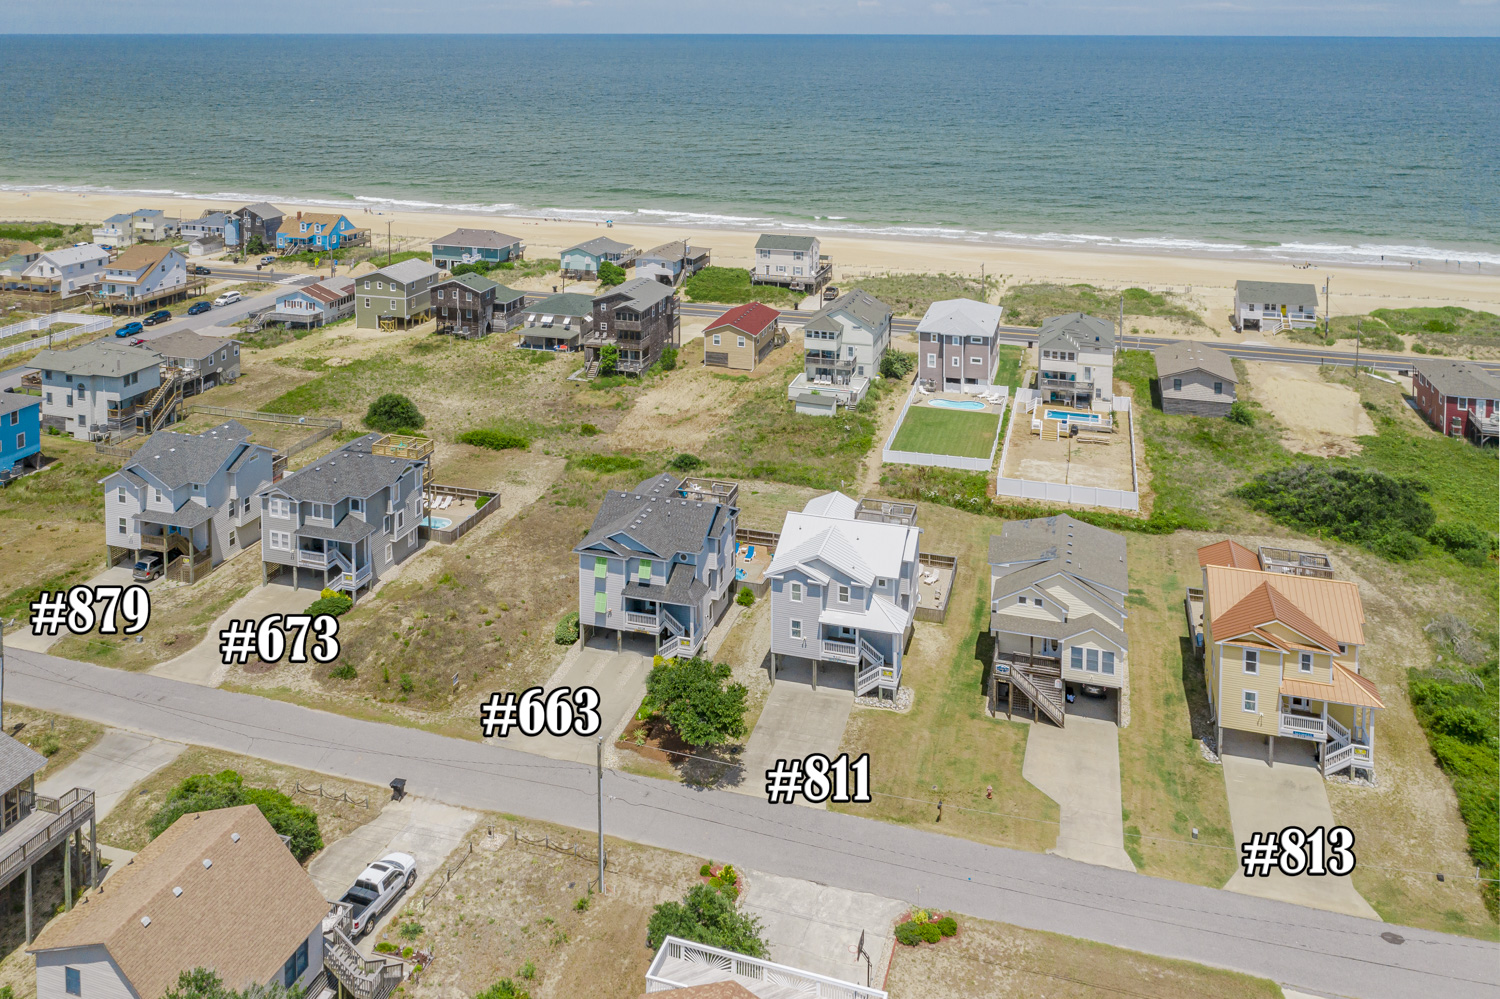 673 The Saltwater Cowboy Outer Banks Vacation Rental In